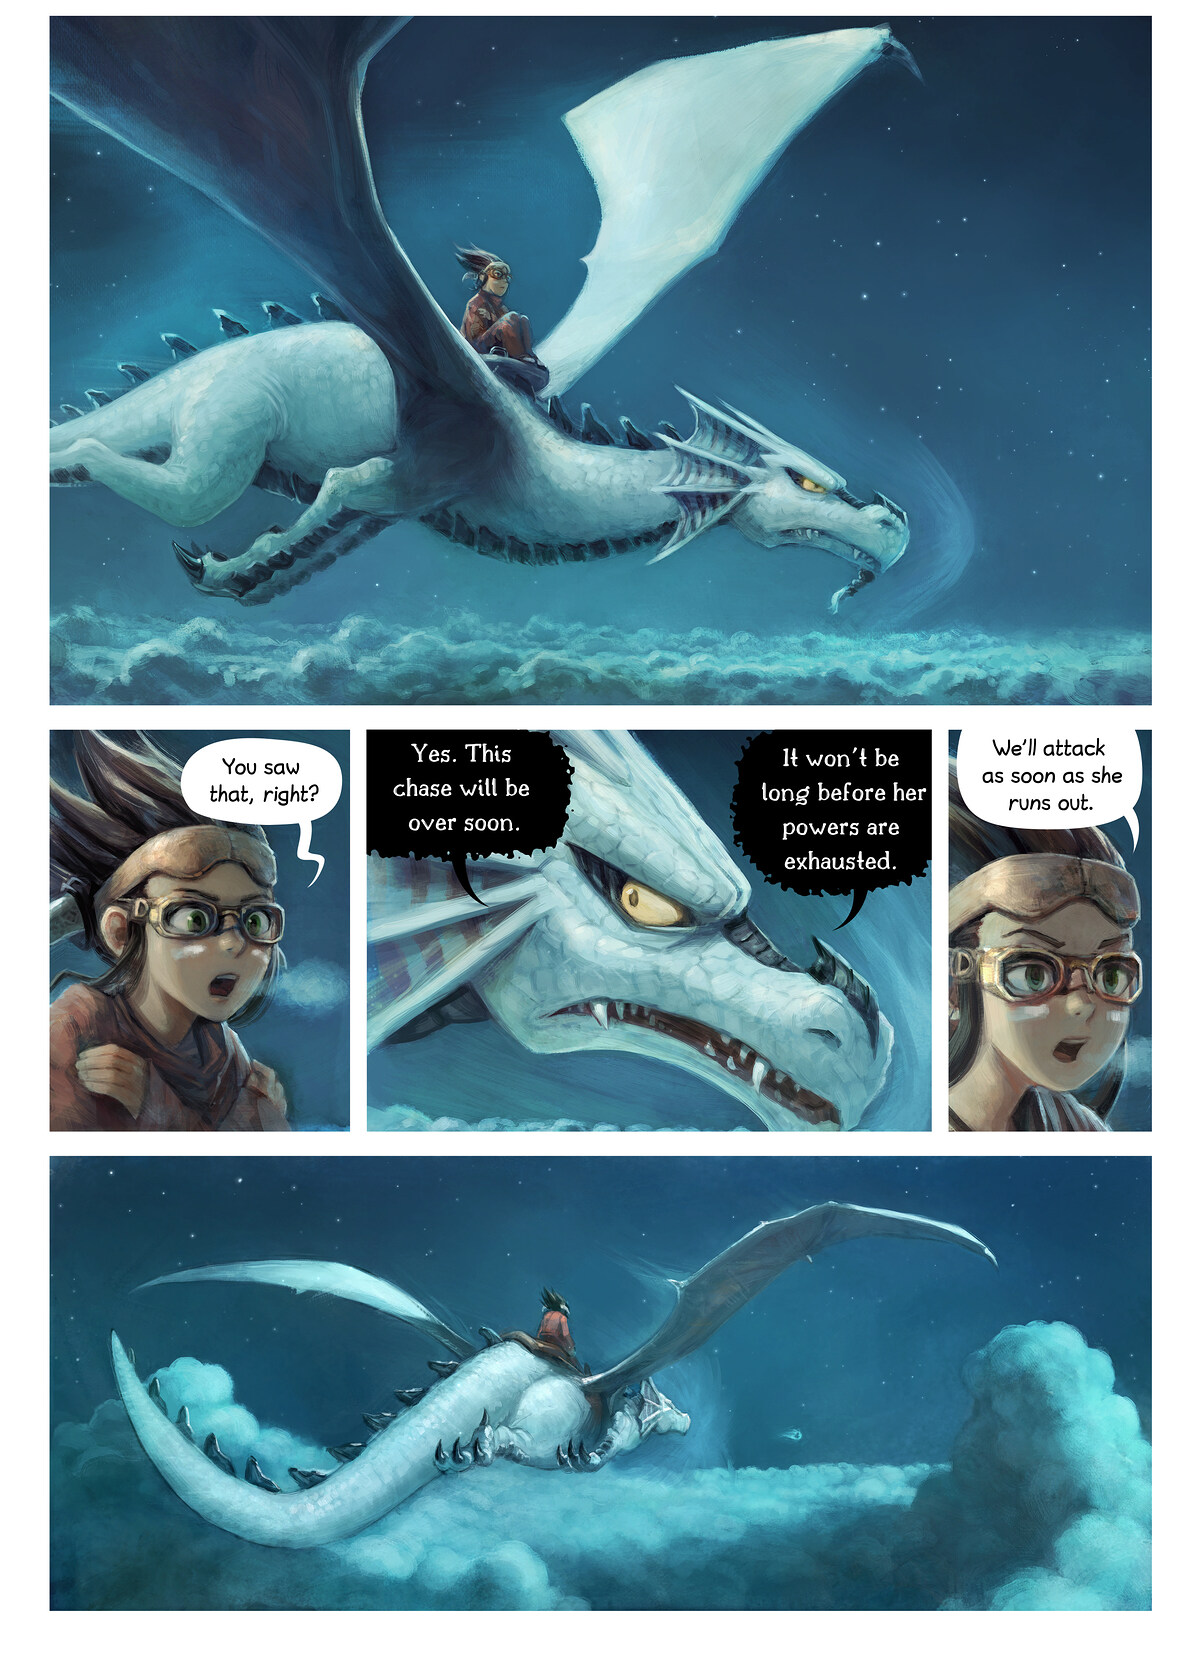 Episode 35: The Reflection, Page 3